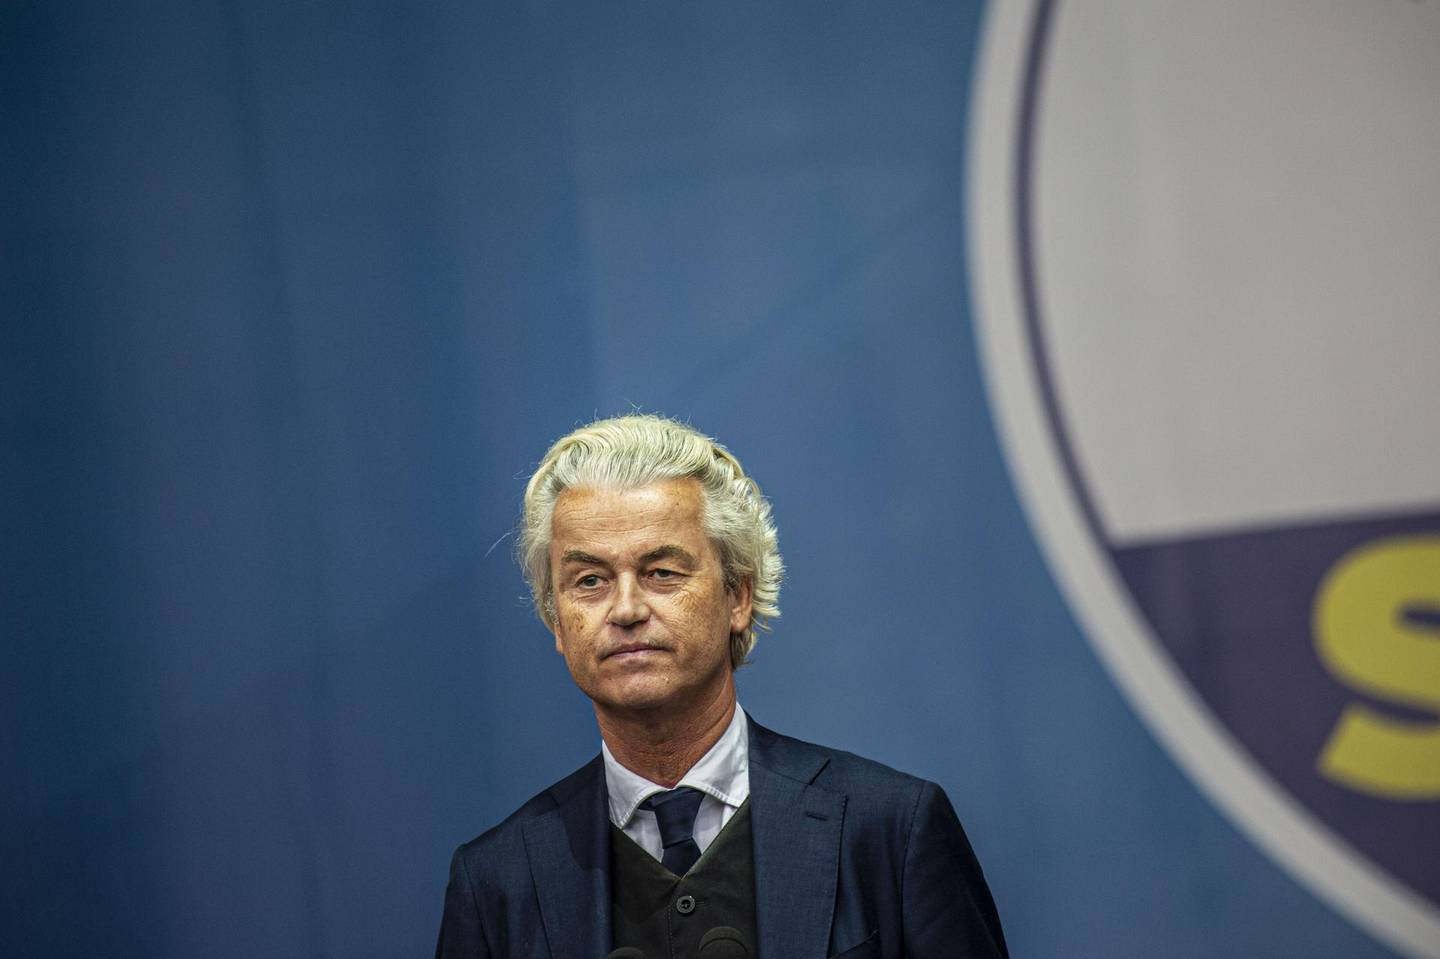 Geert Wilders, leader of the Dutch Freedom Party (PVV), pauses while speaking during a League Party campaign rally with European nationalists ahead of European Parliamentary elections, in Milan, Italy, on Saturday, May 18, 2019. Italy's Deputy Prime Minister Matteo Salvini wants to turn into a show of strength for Europe's army of nationalist leaders trying to upend the continent's politics. Photographer: Francesca Volpi/Bloomberg